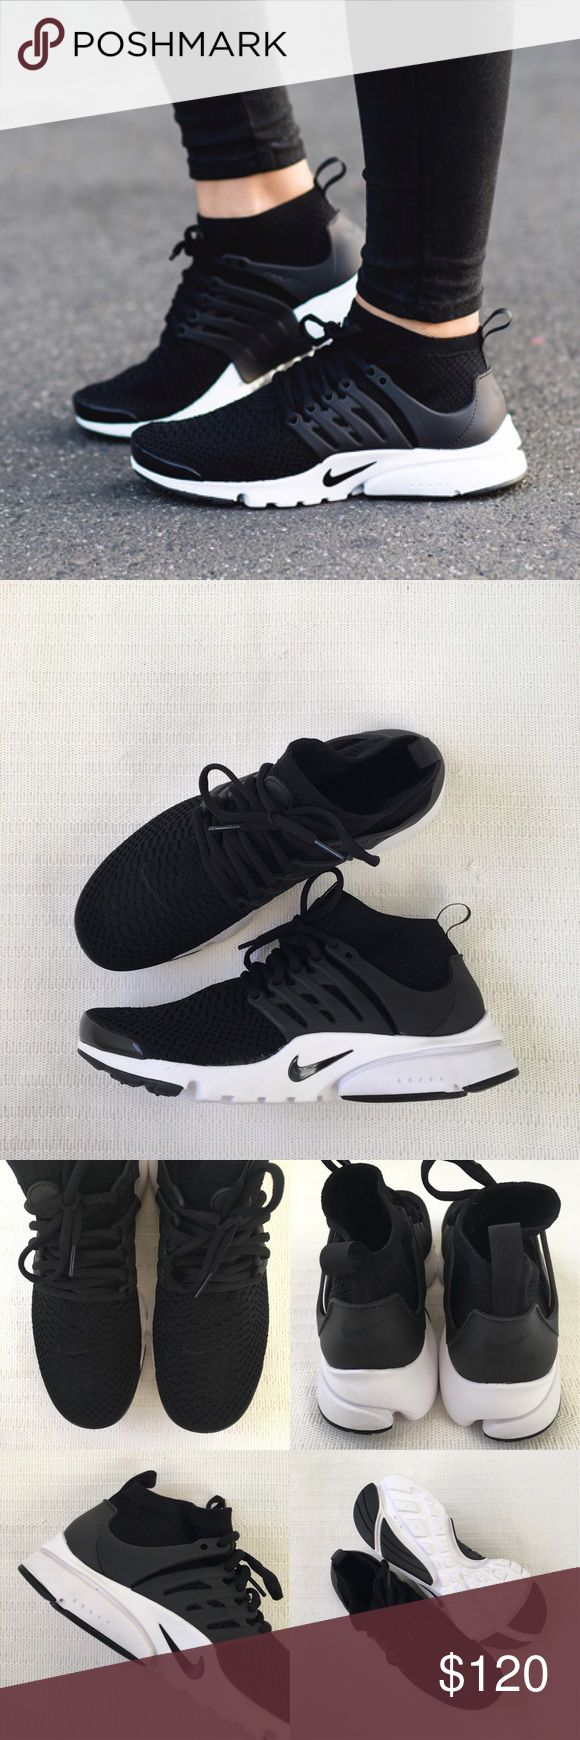 Womens Nike Air Presto Ultra Flyknit Sneakers Womens Nike Air Presto Ultra  Flyknit Black Sneakers Style ... b644284eb